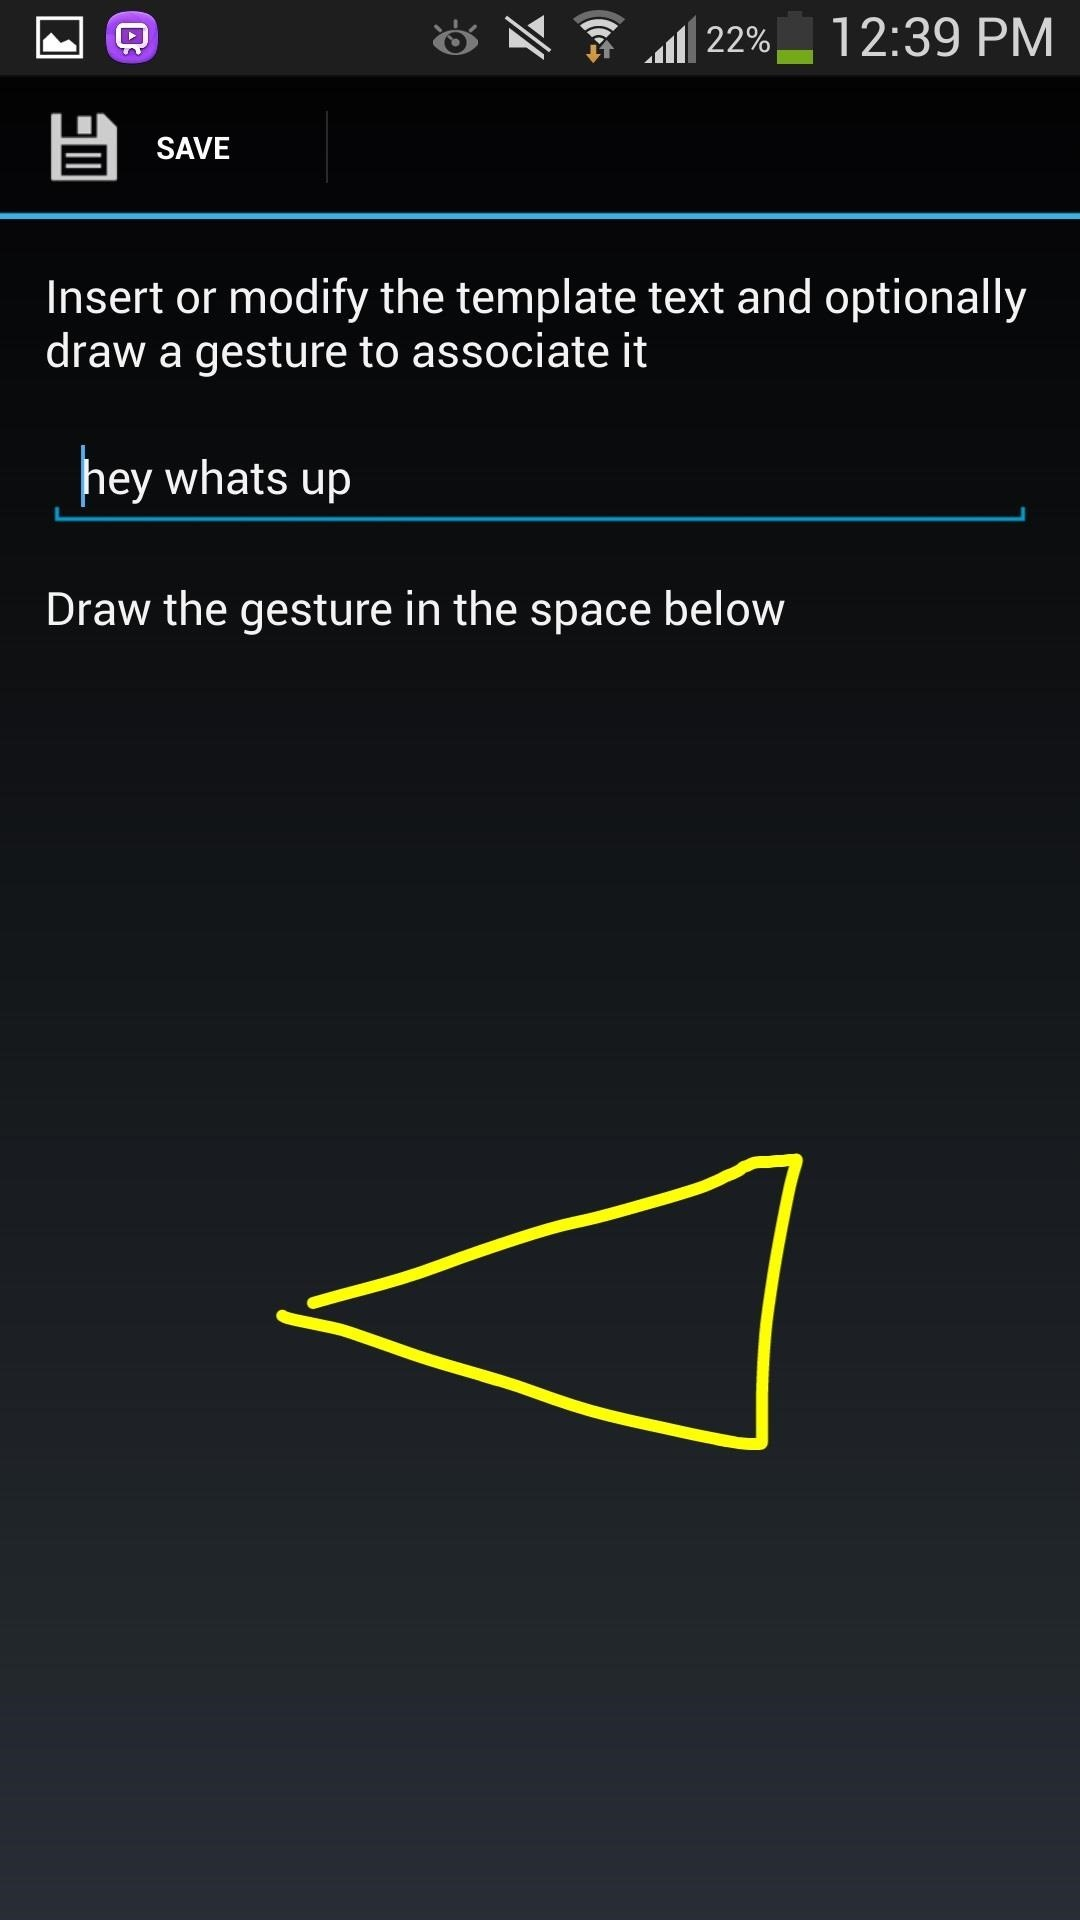 Text Better on Your Samsung Galaxy S4 with This Hybrid Messaging App Based on Android 4.3 & CyanogenMod 10.2